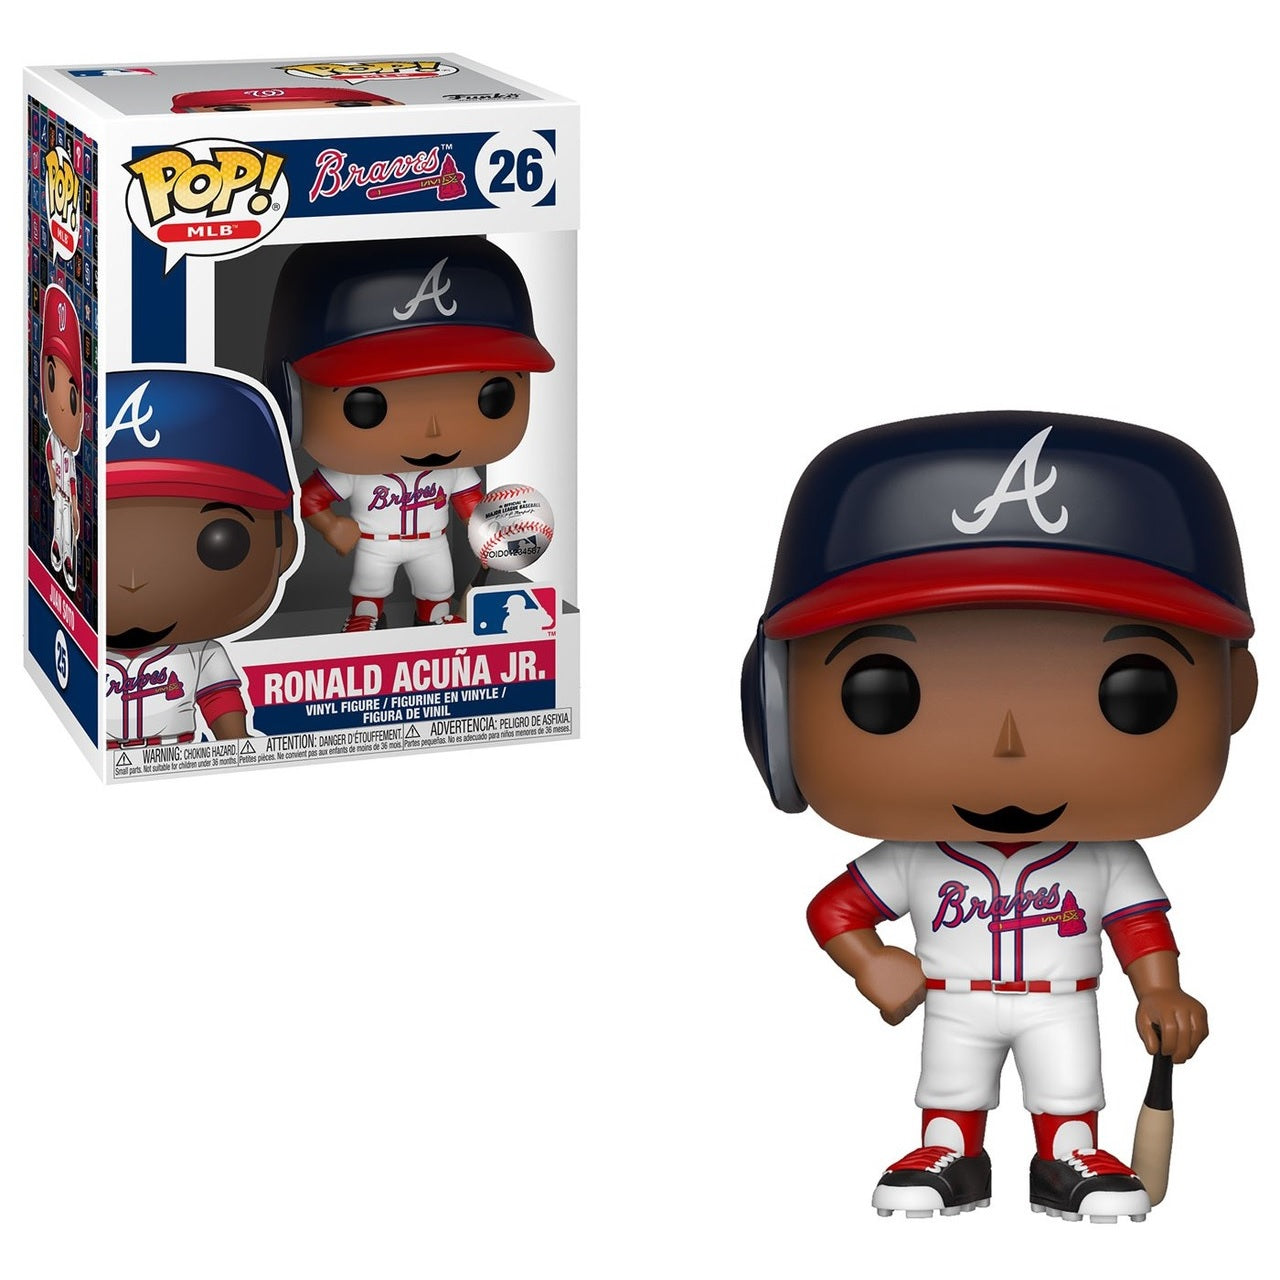 MLB Pop! Vinyl Figure Ronald Acuna Jr. [Atlanta Braves] [26] - Fugitive Toys